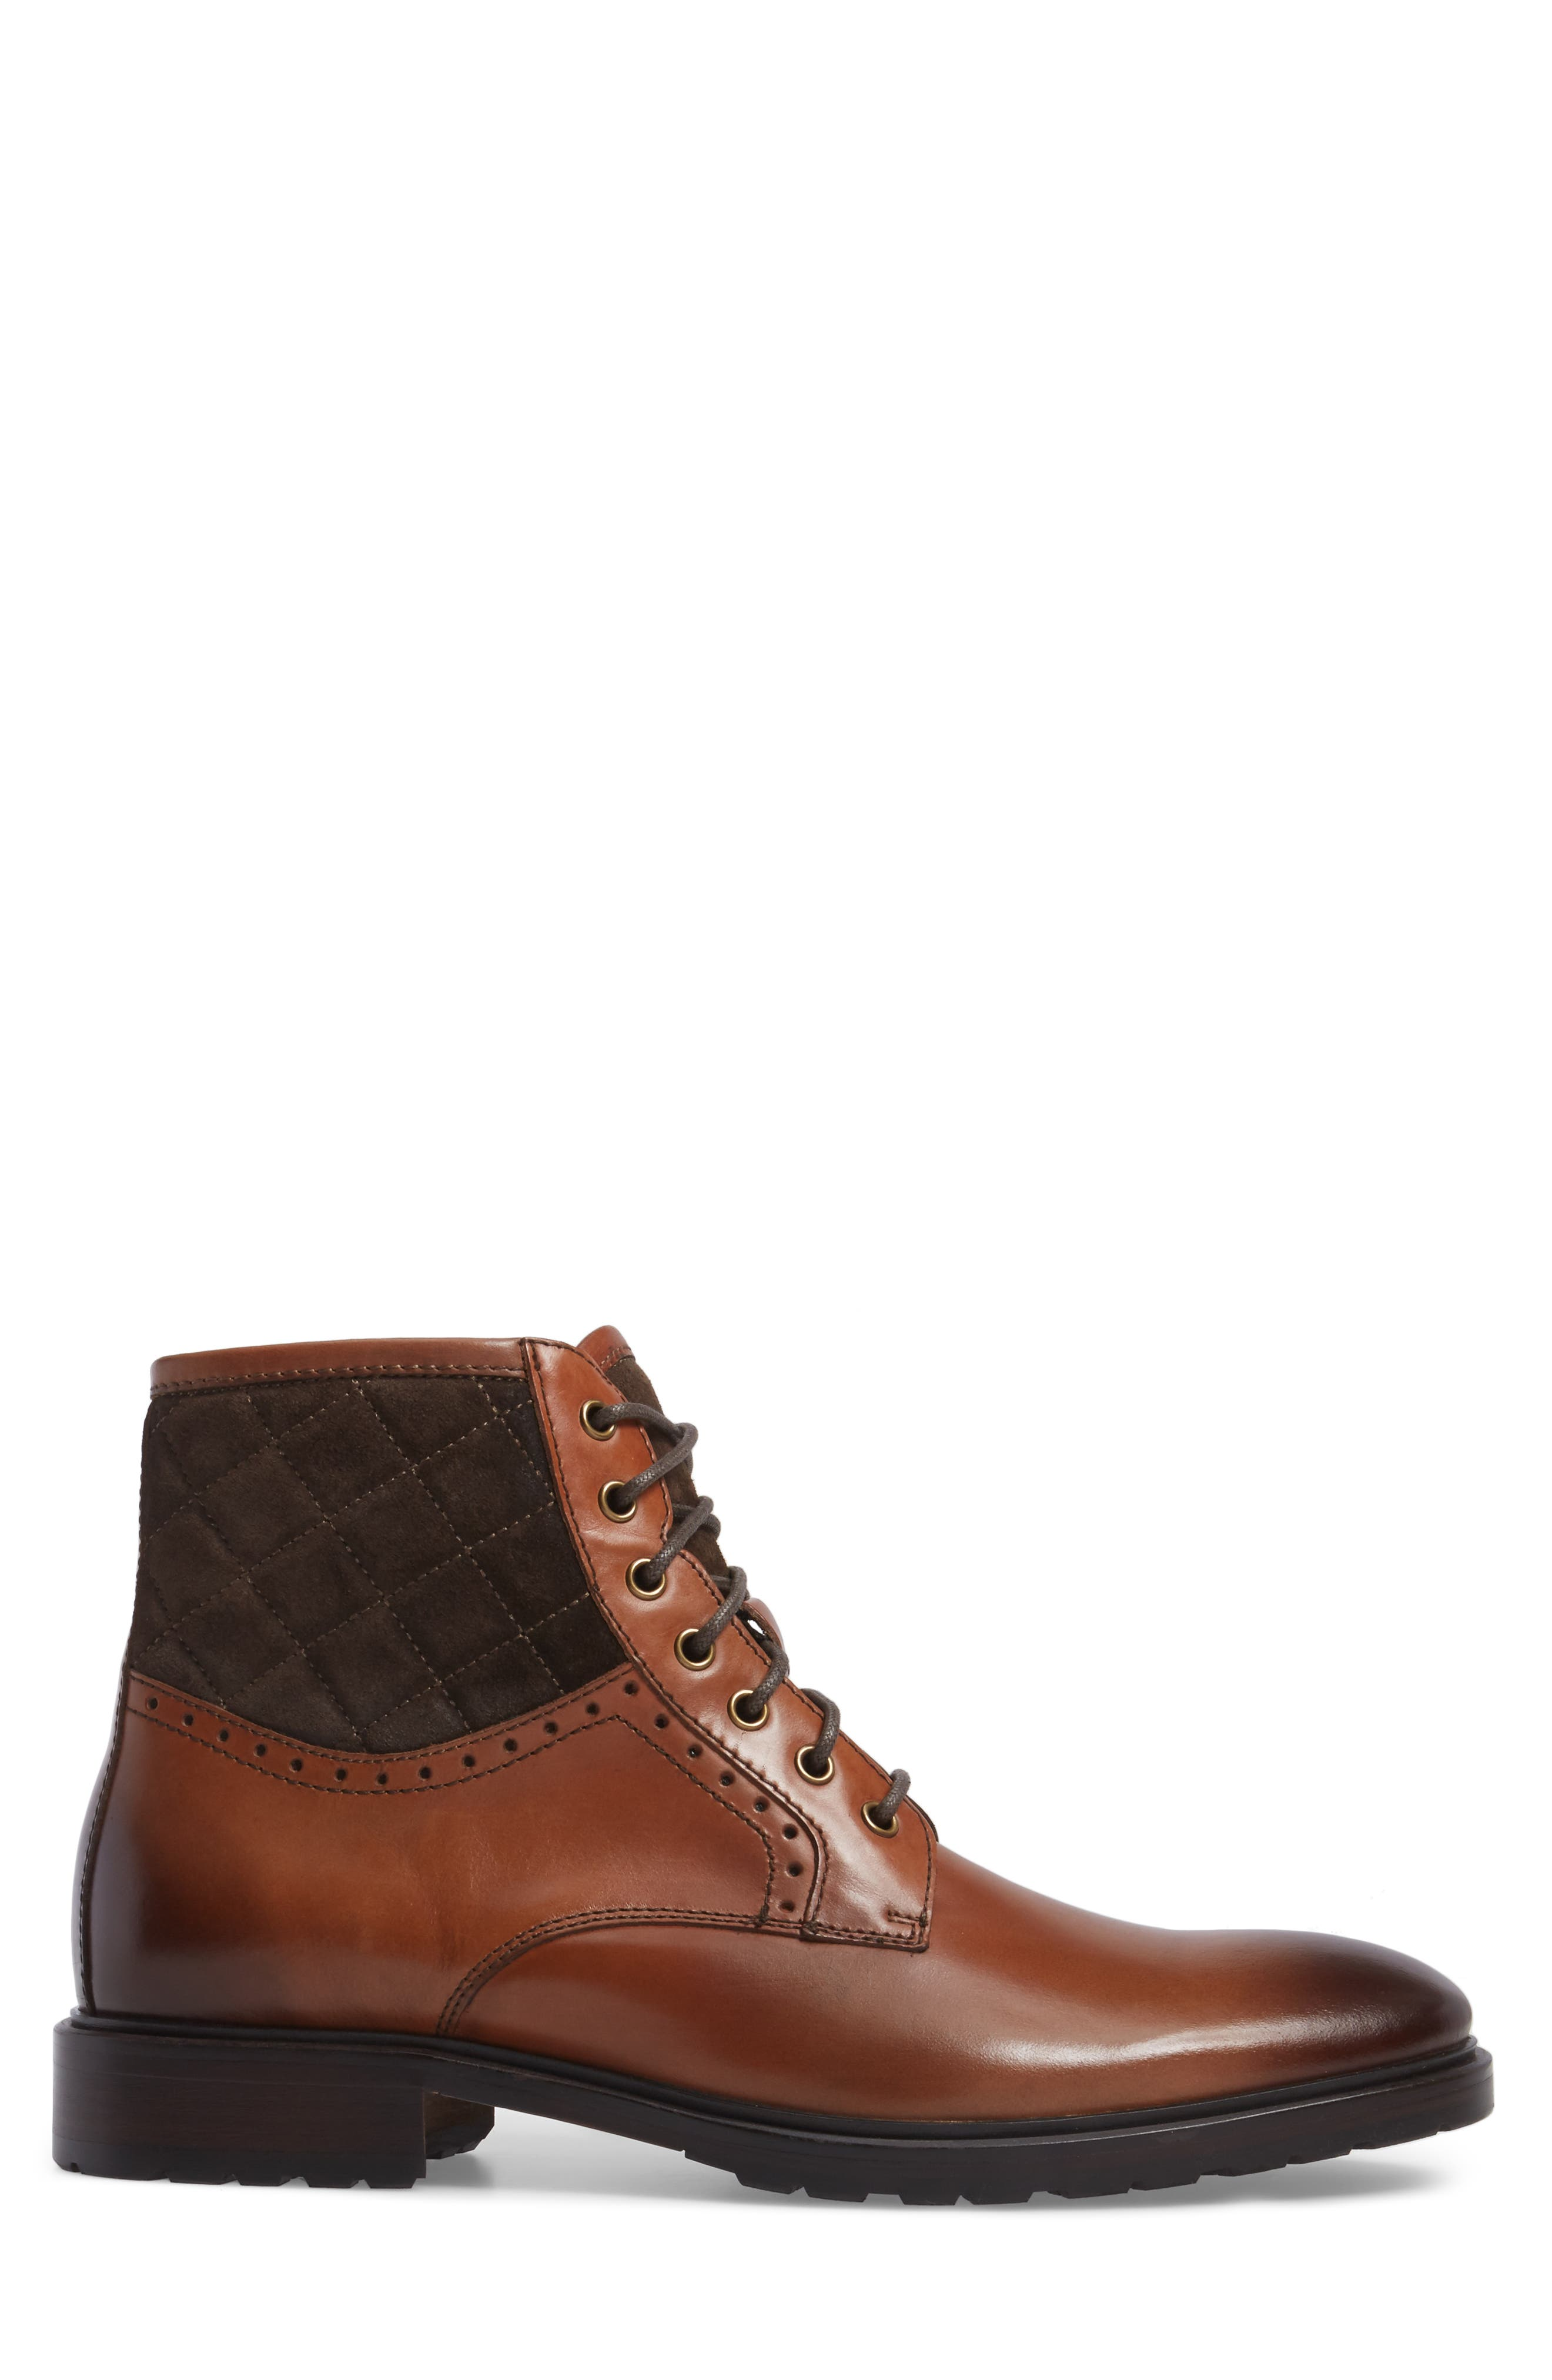 Myles Plain Toe Boot,                             Alternate thumbnail 6, color,